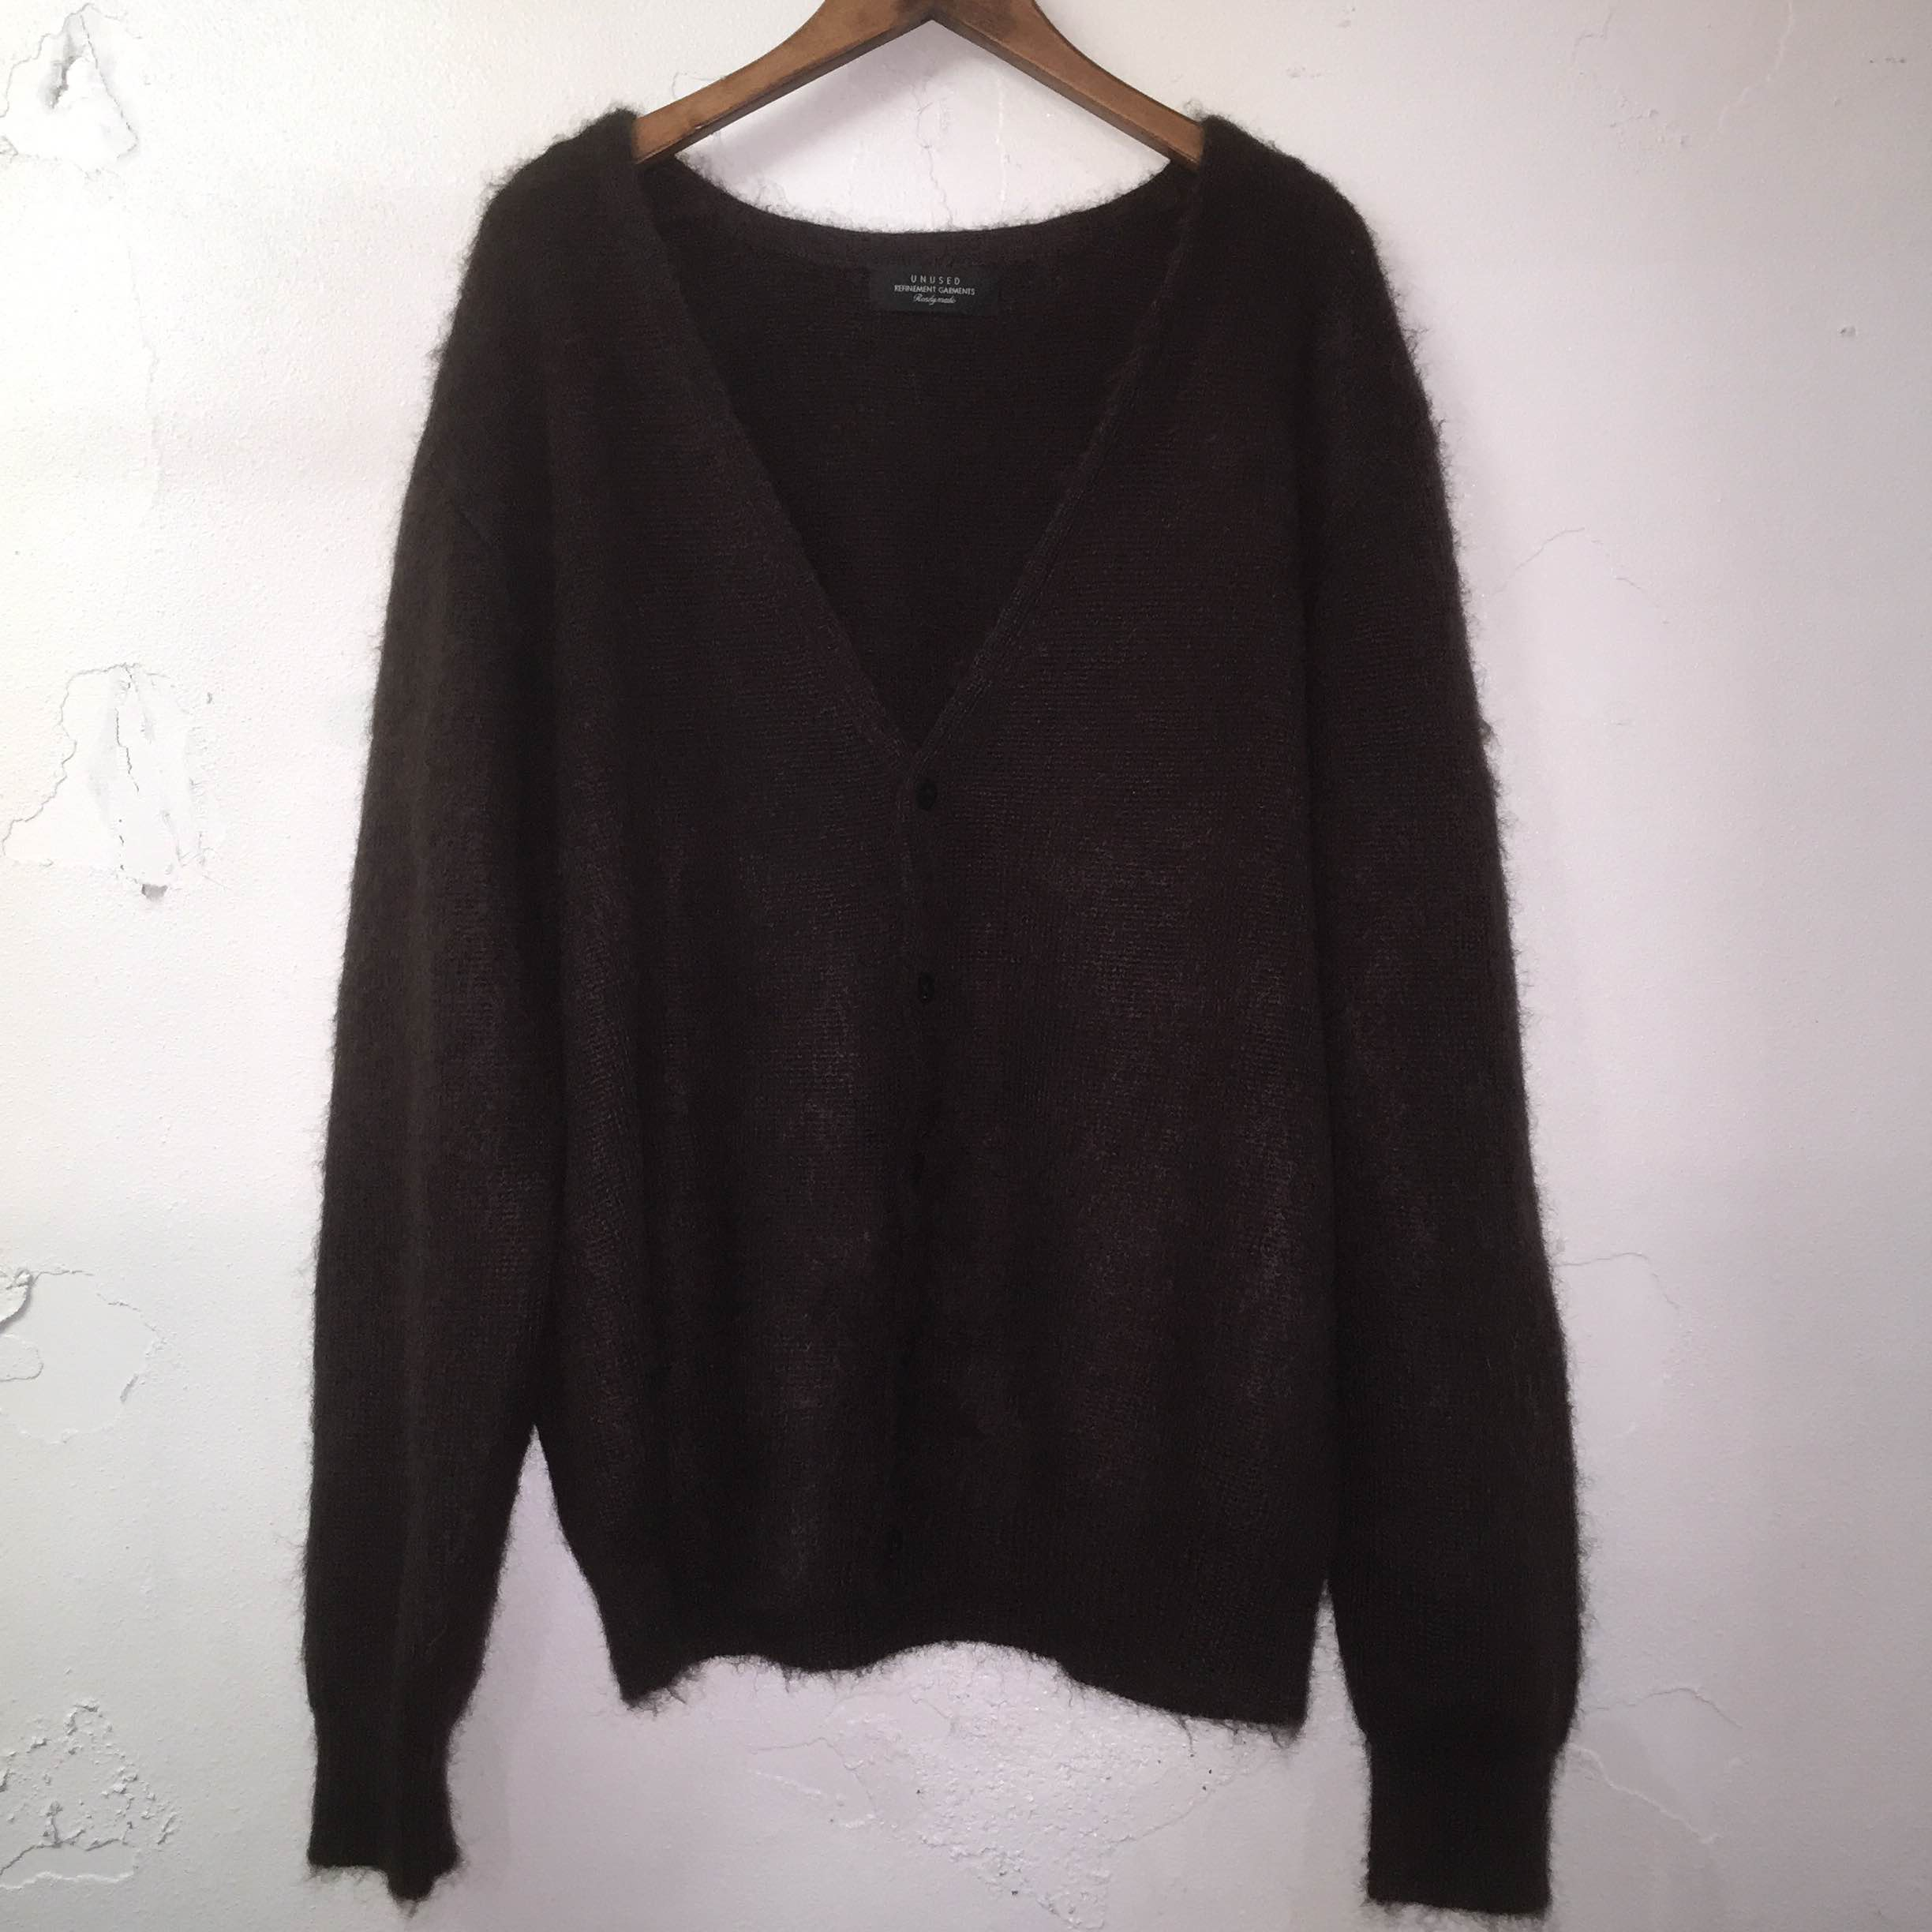 UNUSED 16AW MOHAIR KNIT CARDIGAN 3